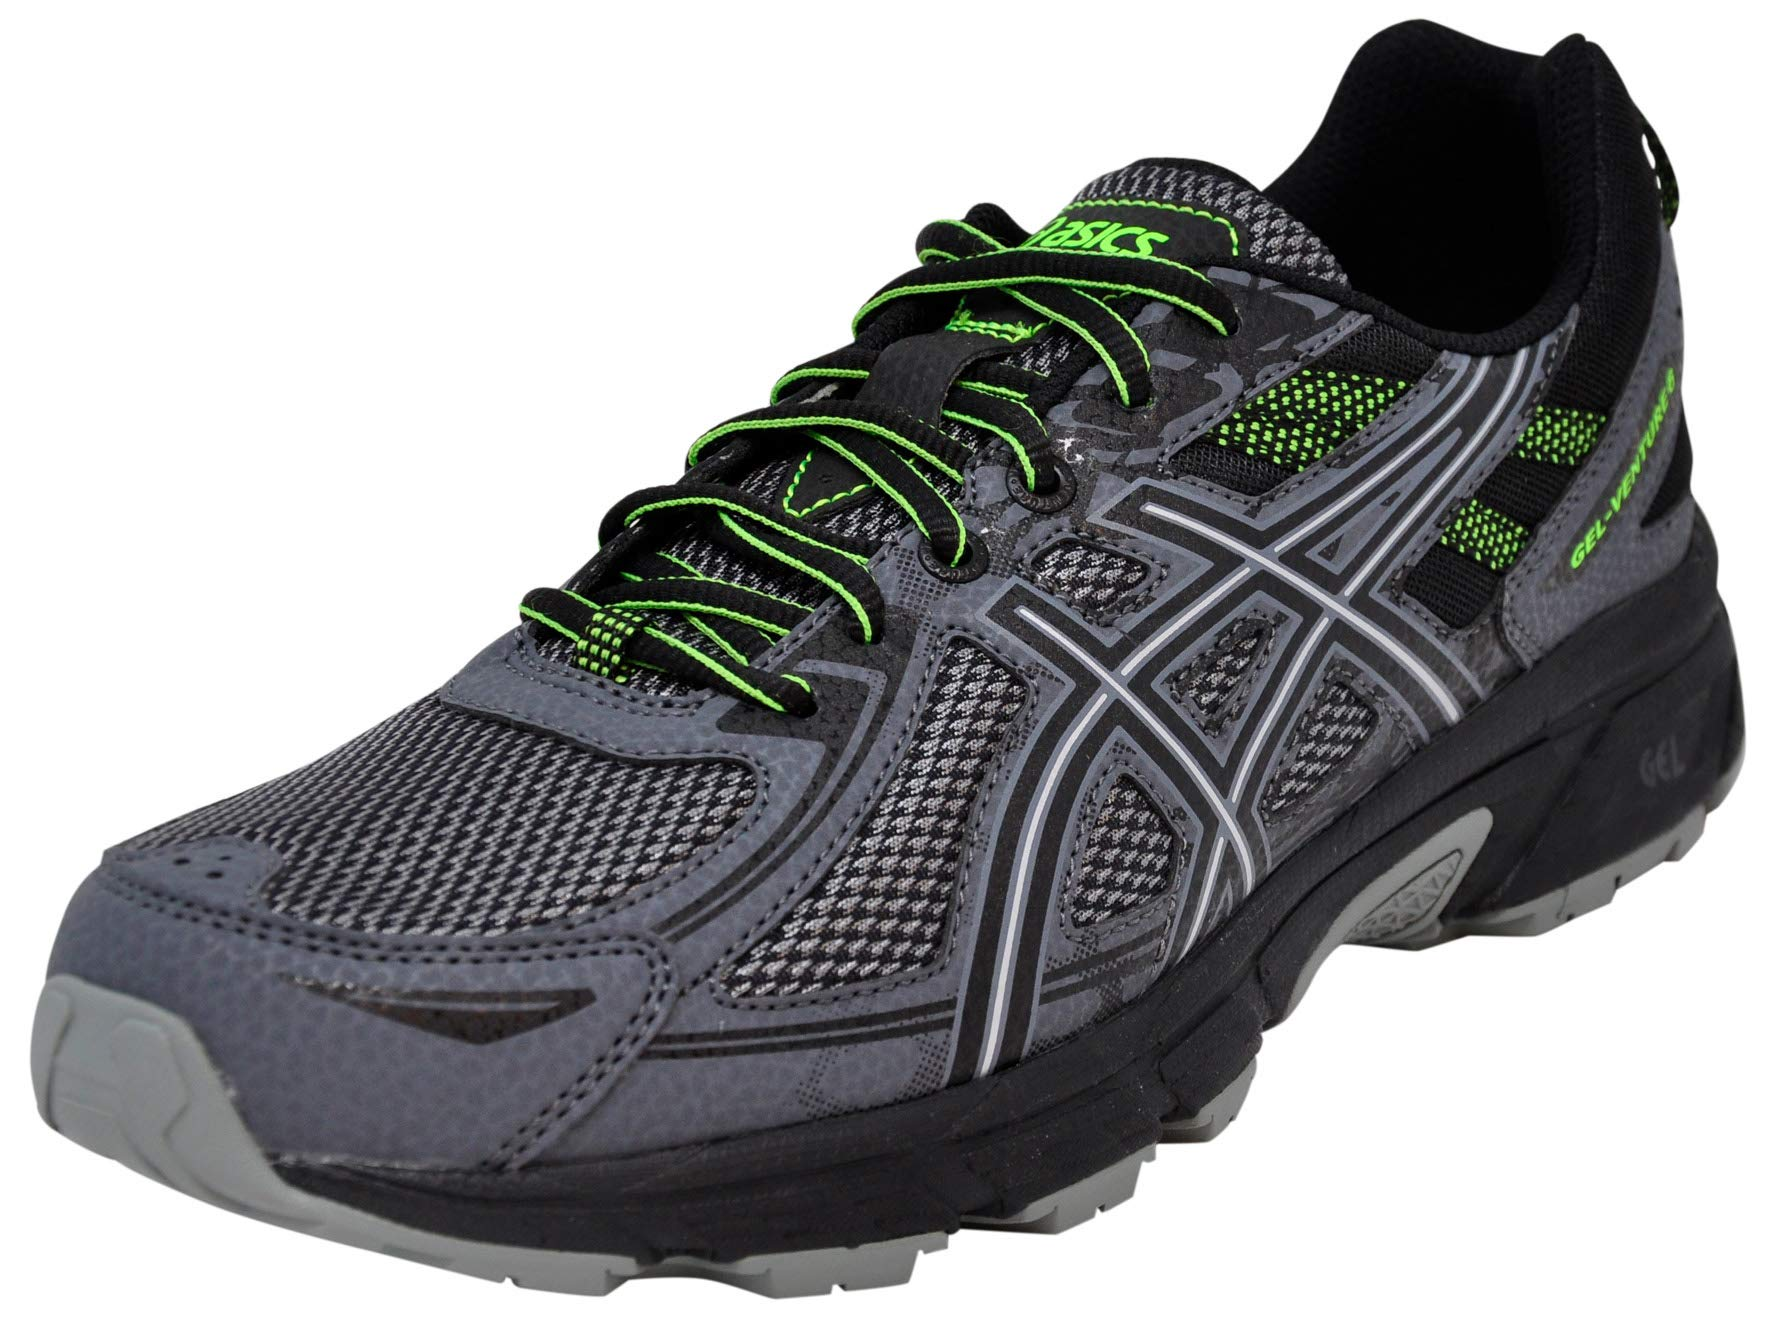 ASICS Men Gel-Venture 6 Running Shoe, Metropolis/Glacier Grey, 11 M US by ASICS